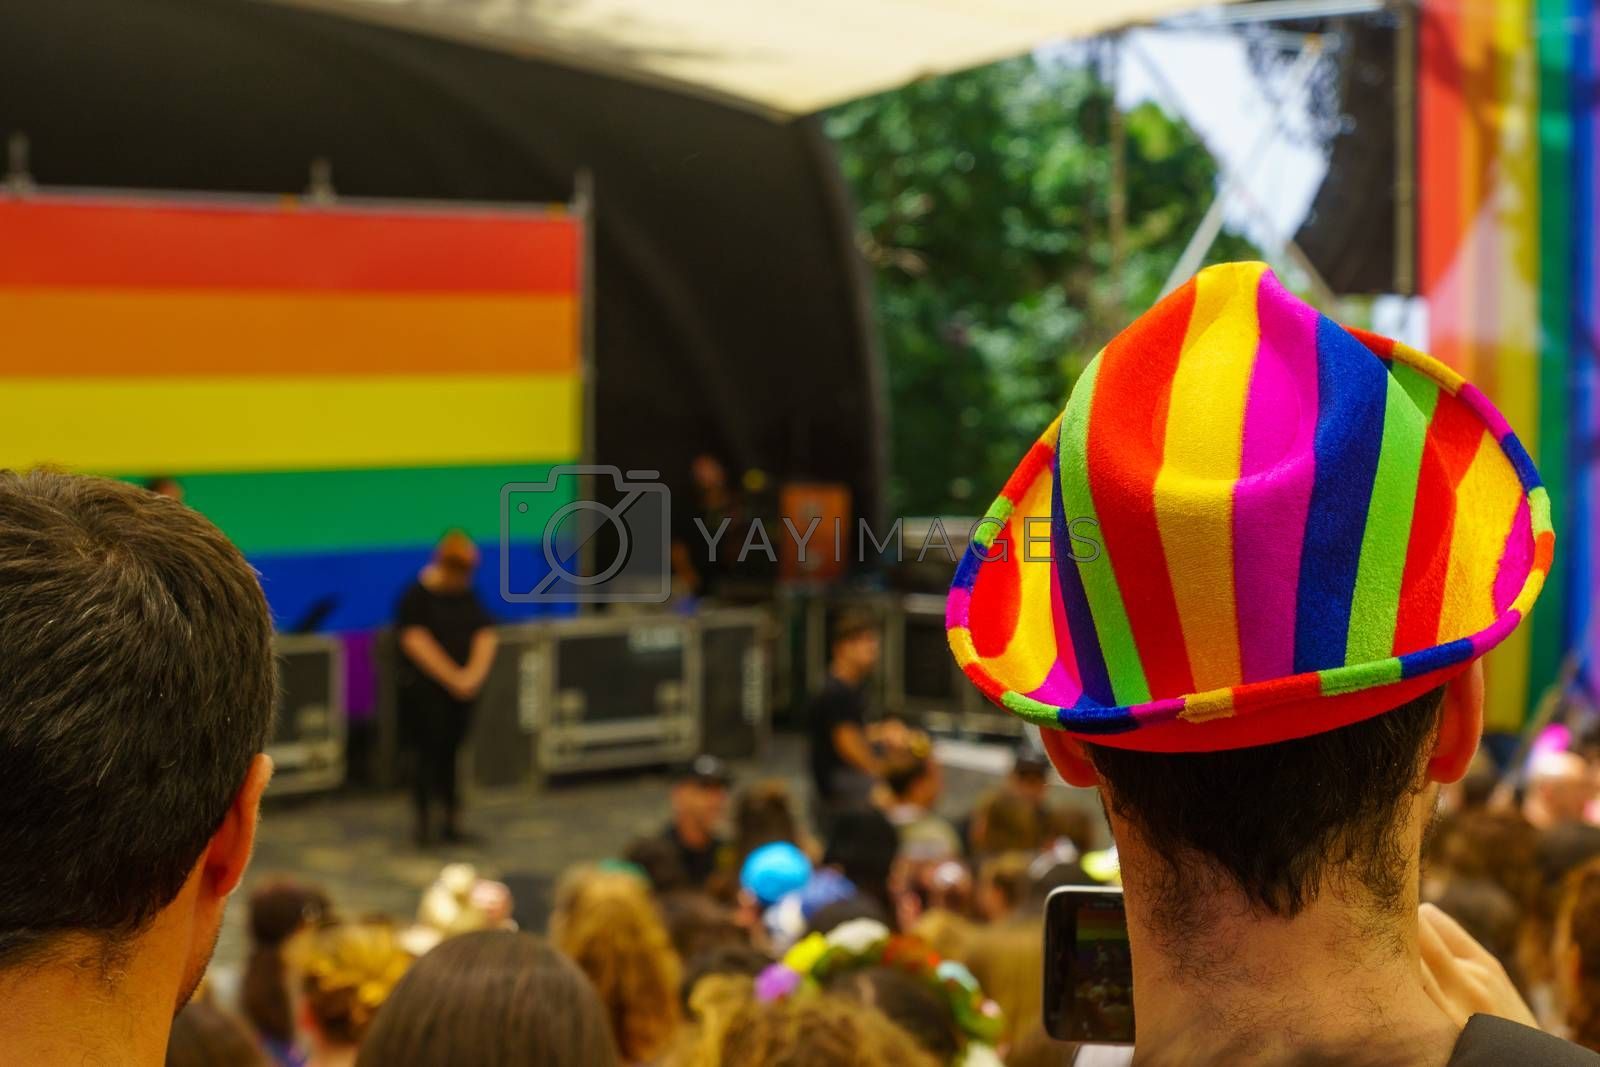 Haifa, Israel - June 28, 2019: Colorful hat and the crowd in the annual pride parade of the LGBT community, in the streets of Haifa, Israel